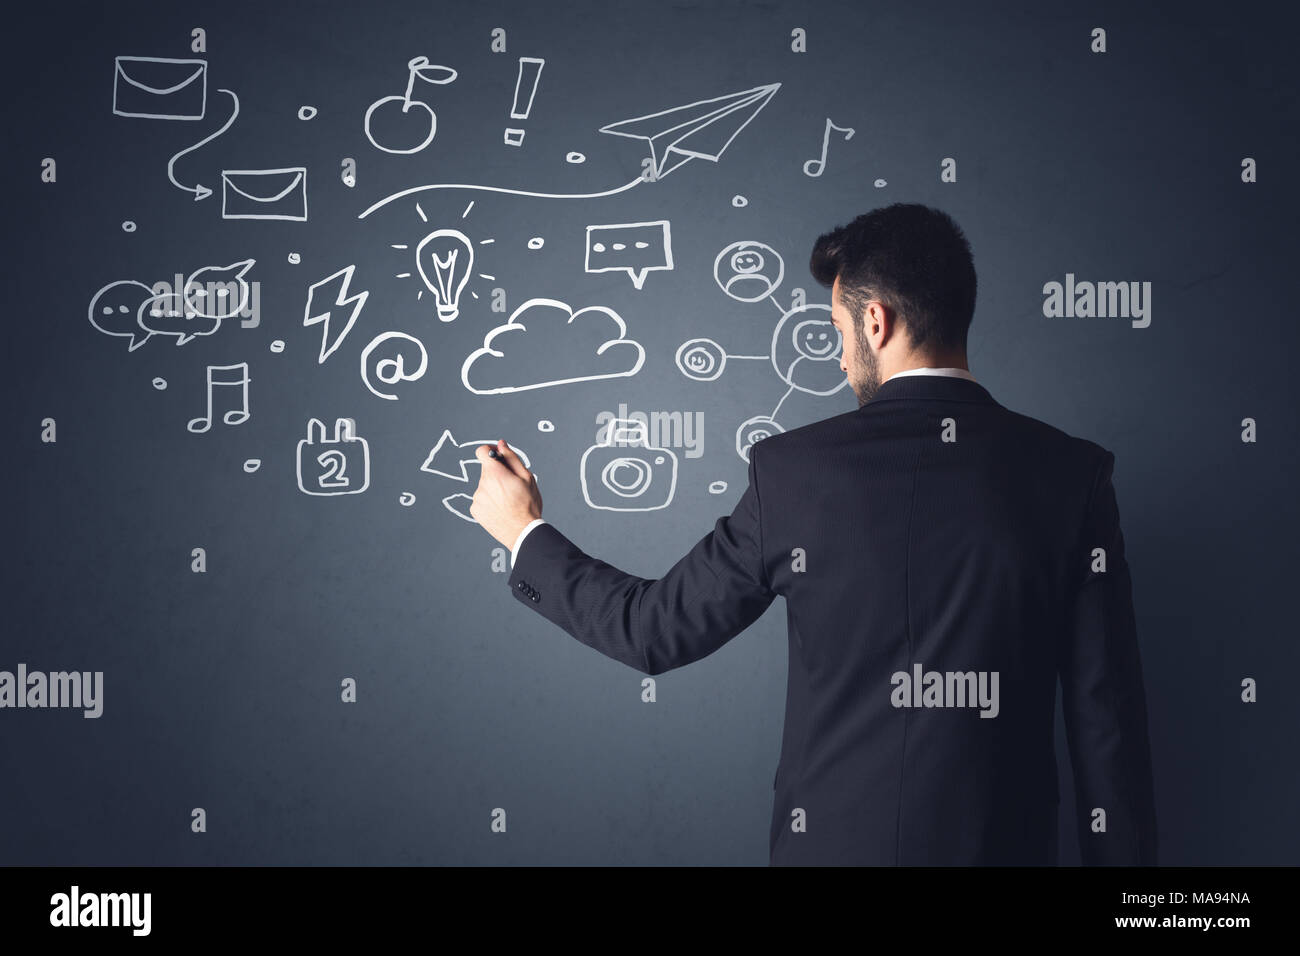 Young businessman in black suit standing in front of white mixed media icons - Stock Image